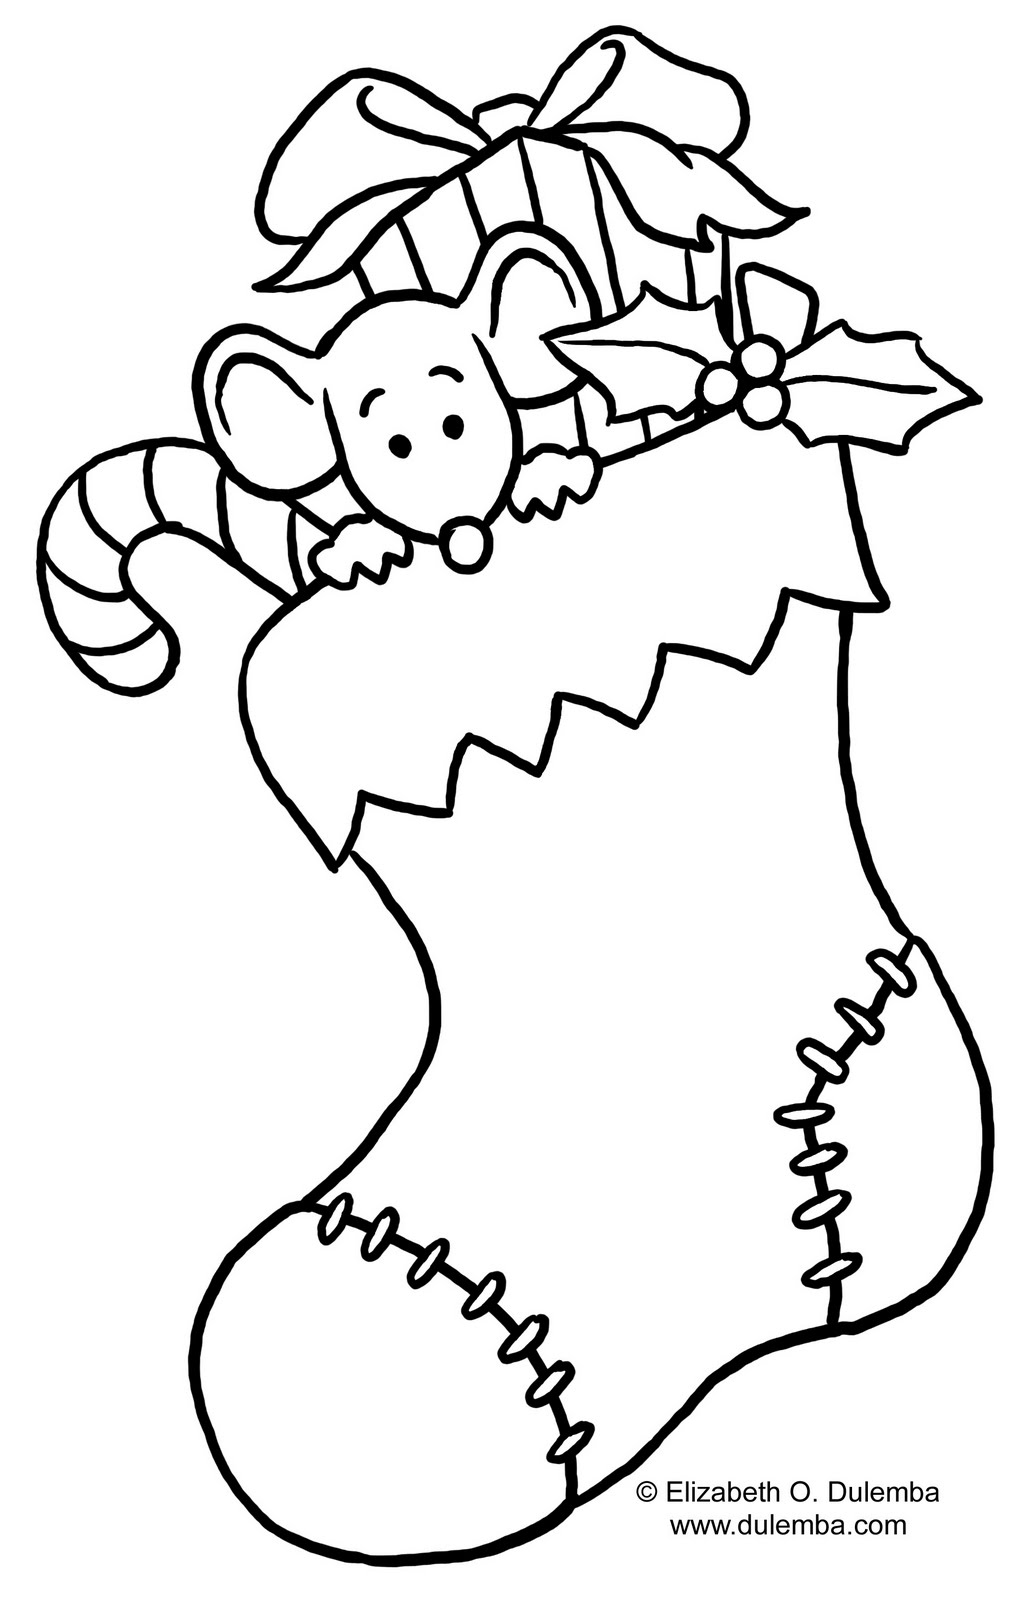 christmal coloring pages - photo#13